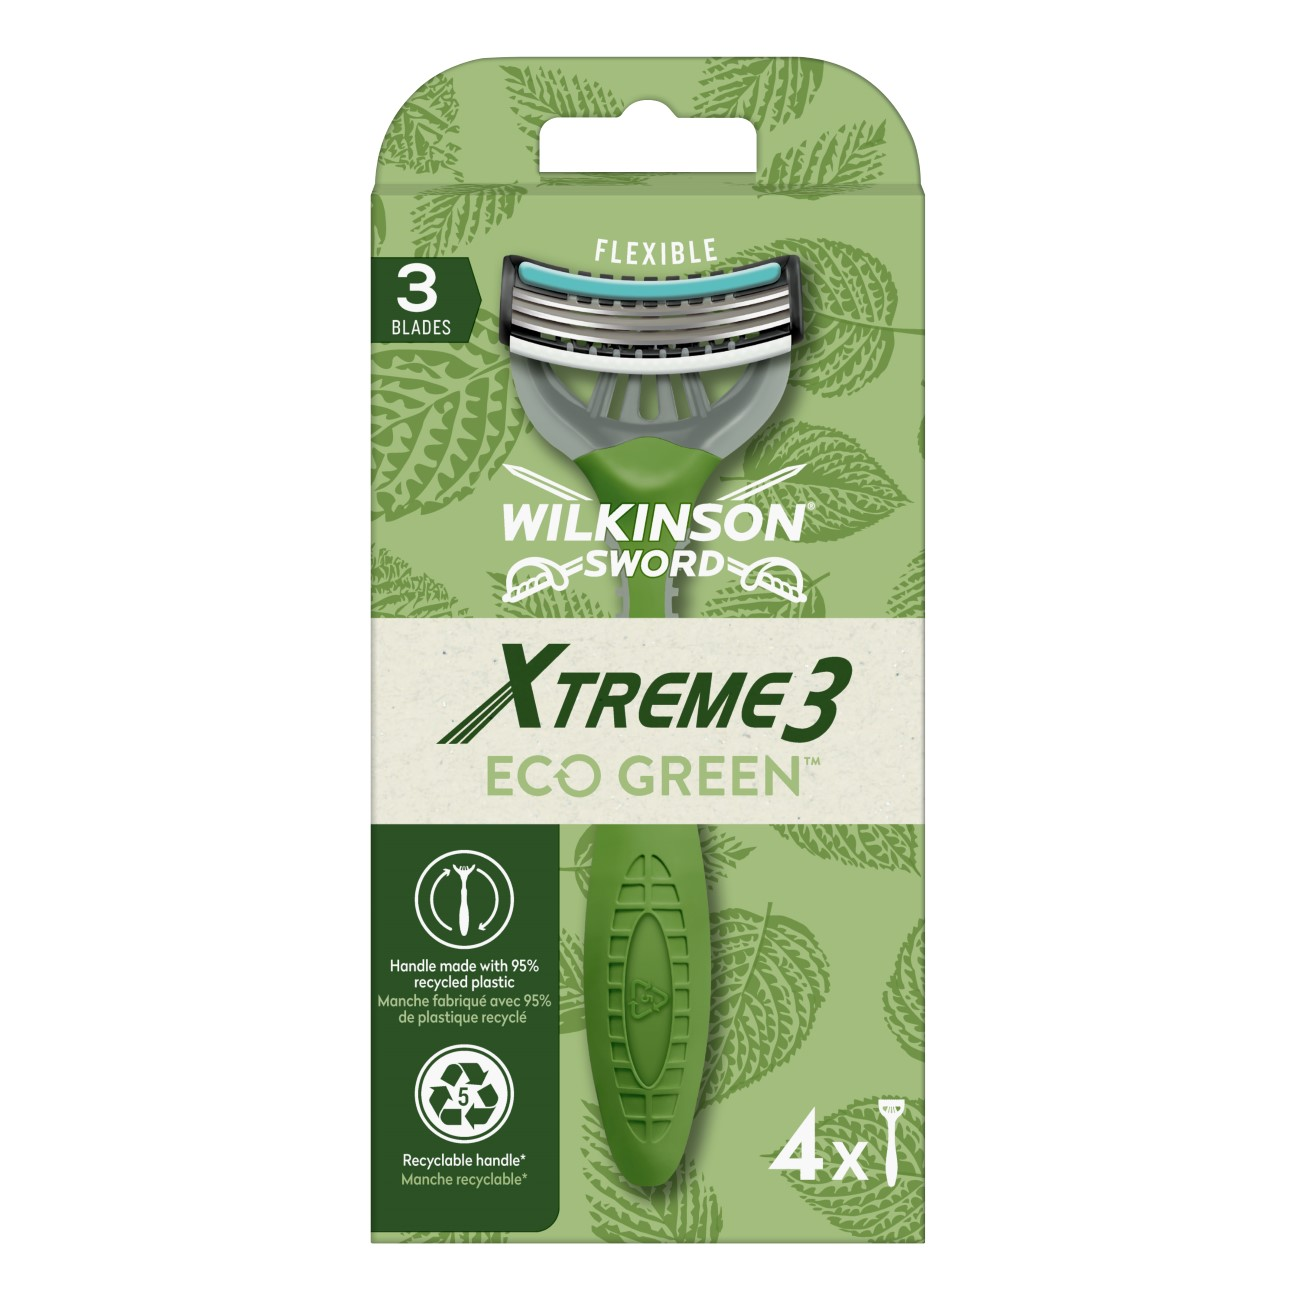 Wilkinson Sword Xtreme 3 Eco Green